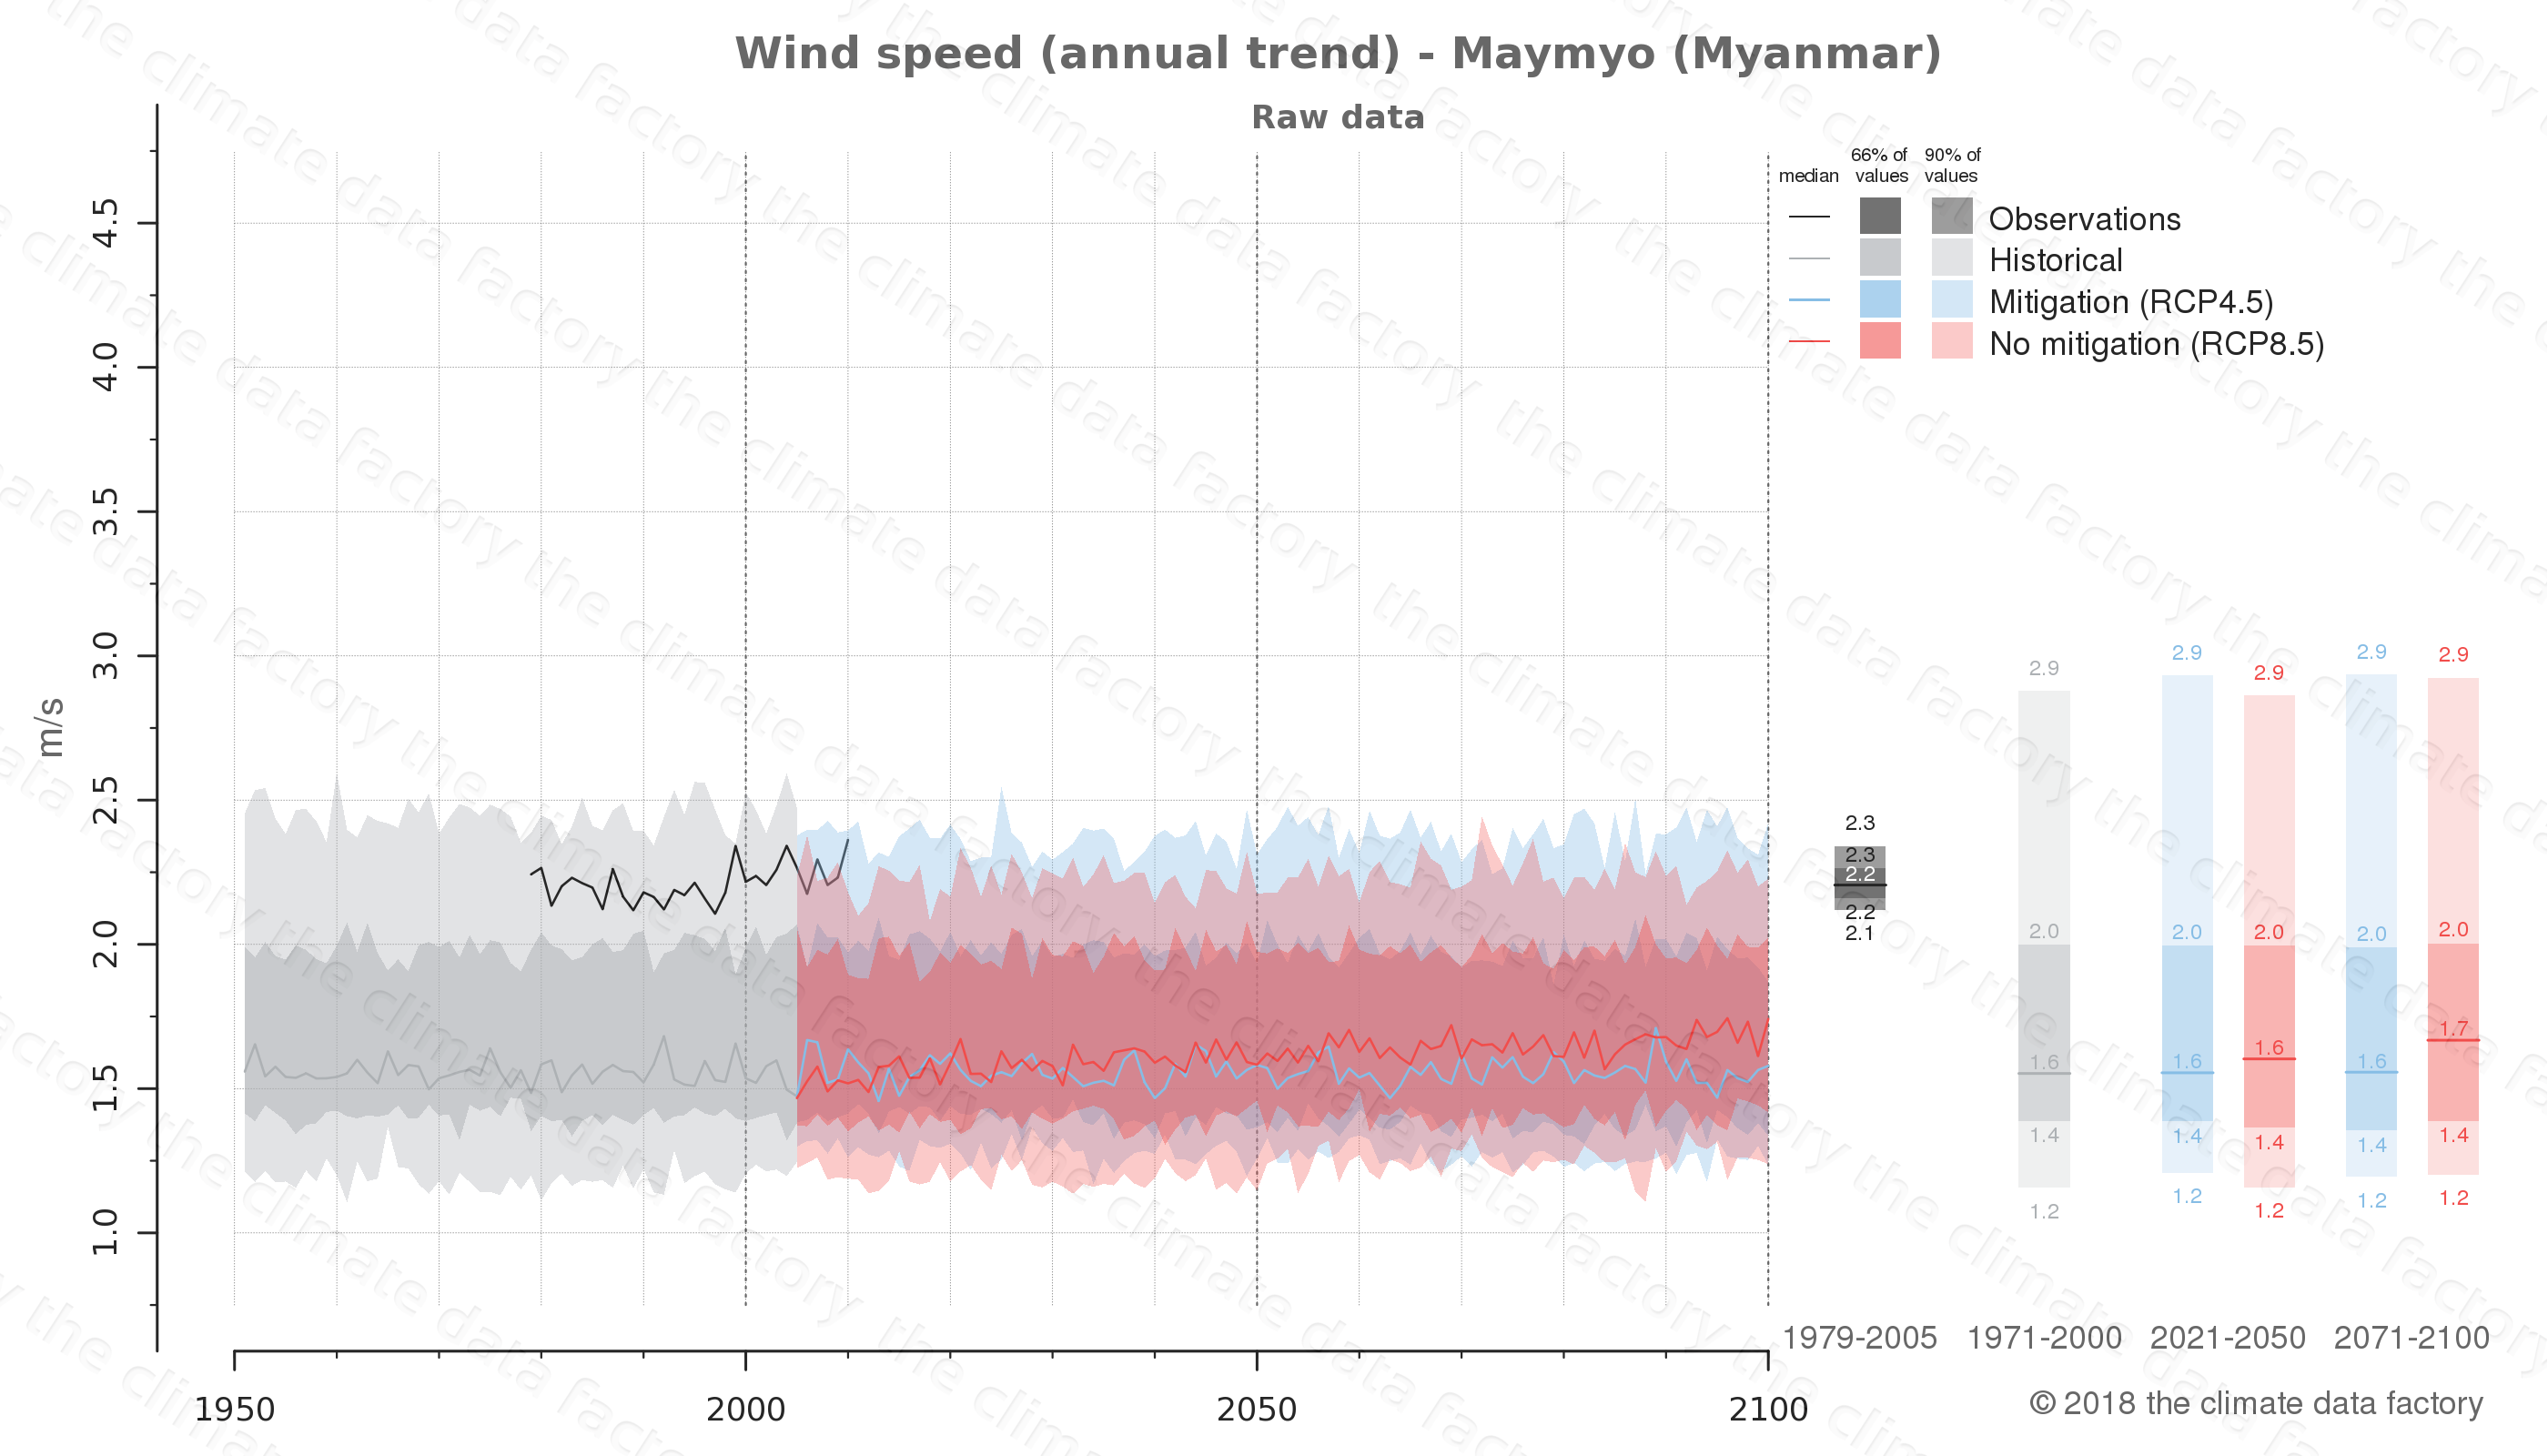 climate change data policy adaptation climate graph city data wind-speed maymyo myanmar